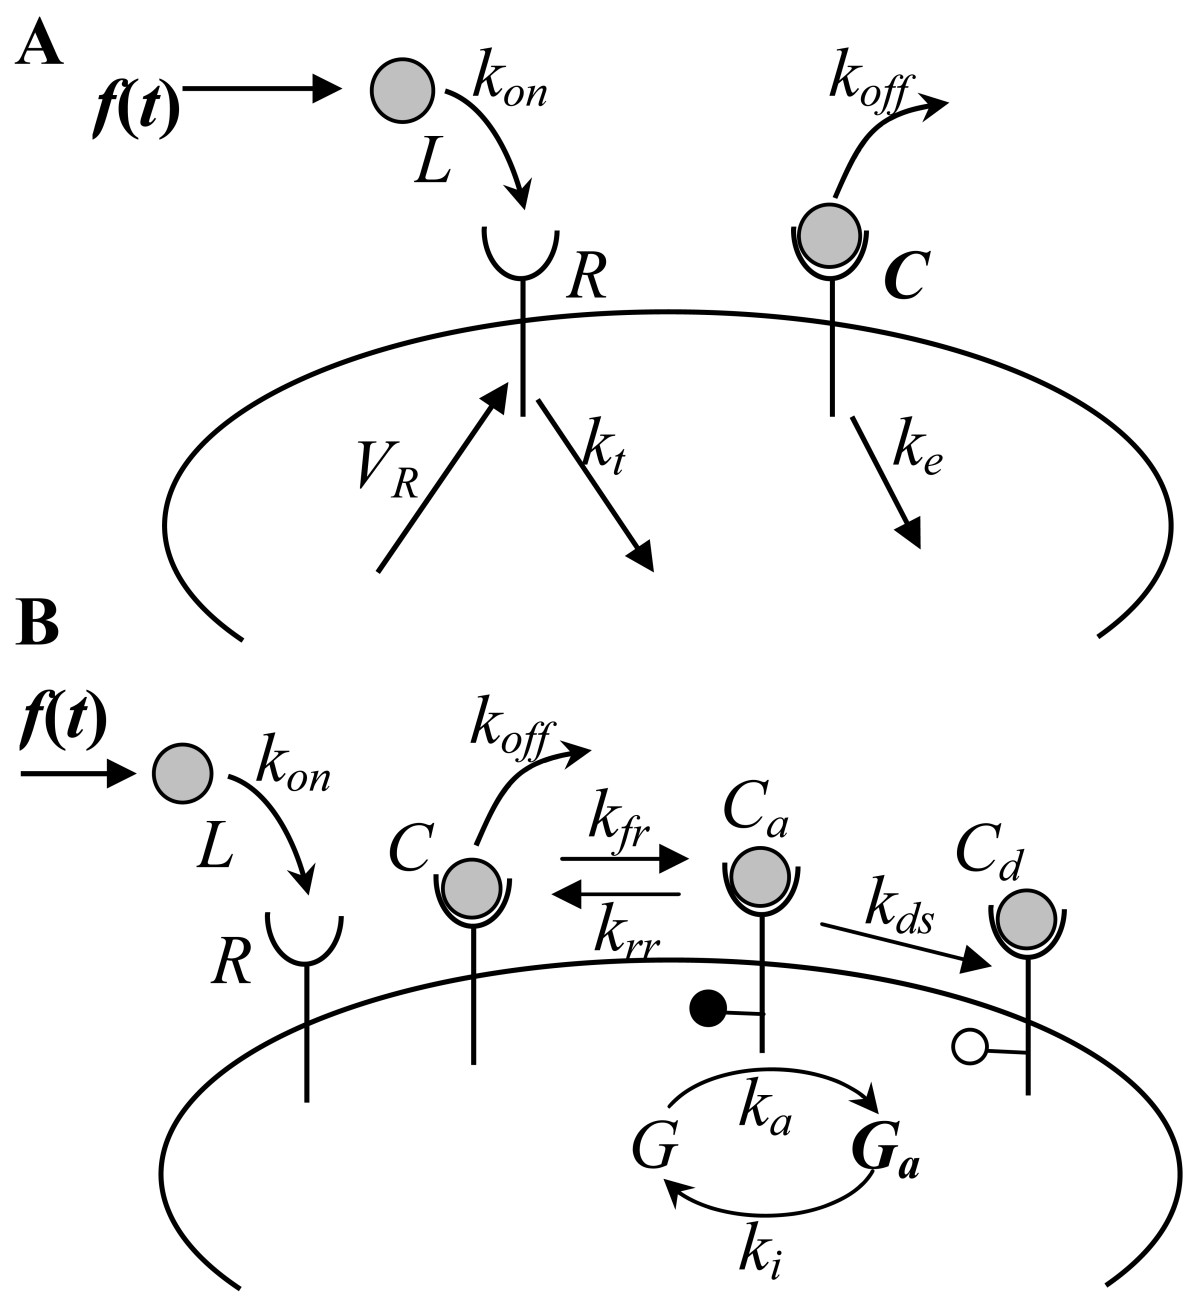 http://static-content.springer.com/image/art%3A10.1186%2F1752-0509-1-48/MediaObjects/12918_2007_Article_48_Fig1_HTML.jpg